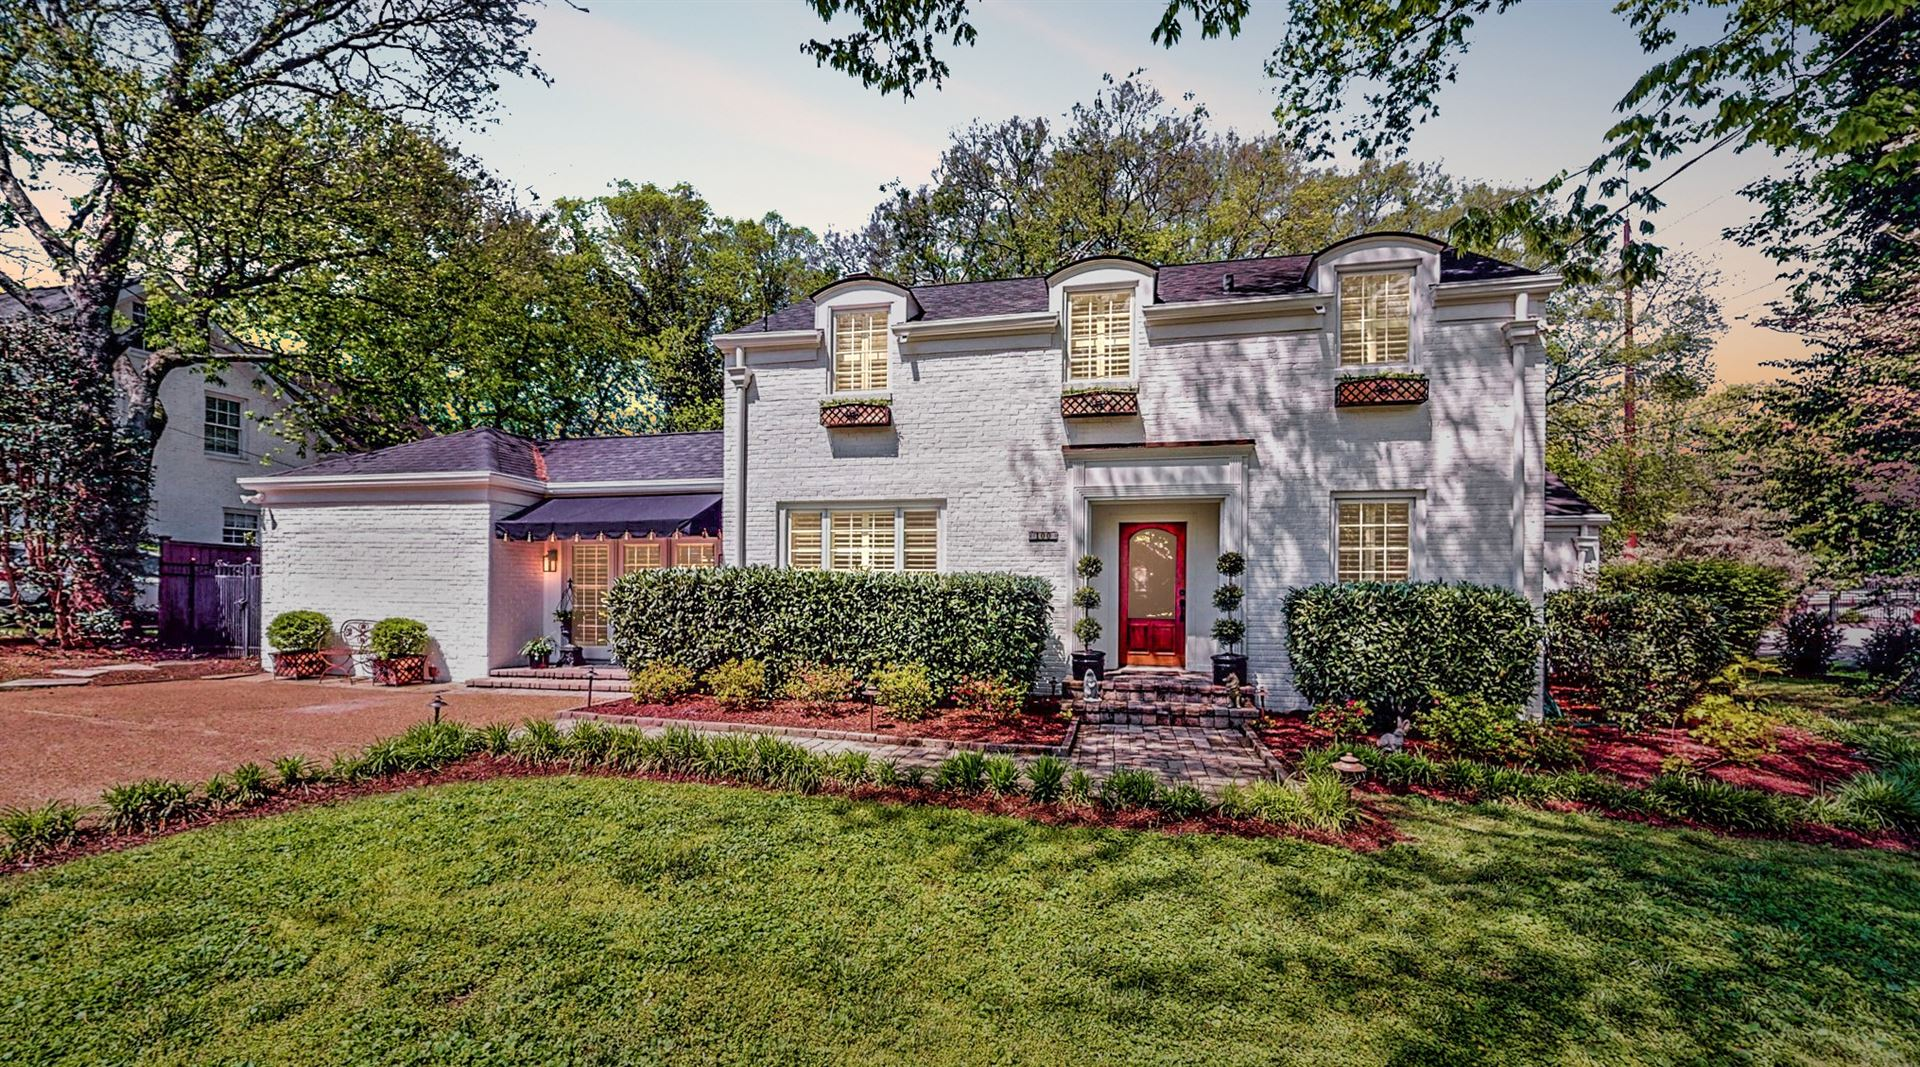 Photo of 100 Lincoln Ct, Nashville, TN 37205 (MLS # 2143423)